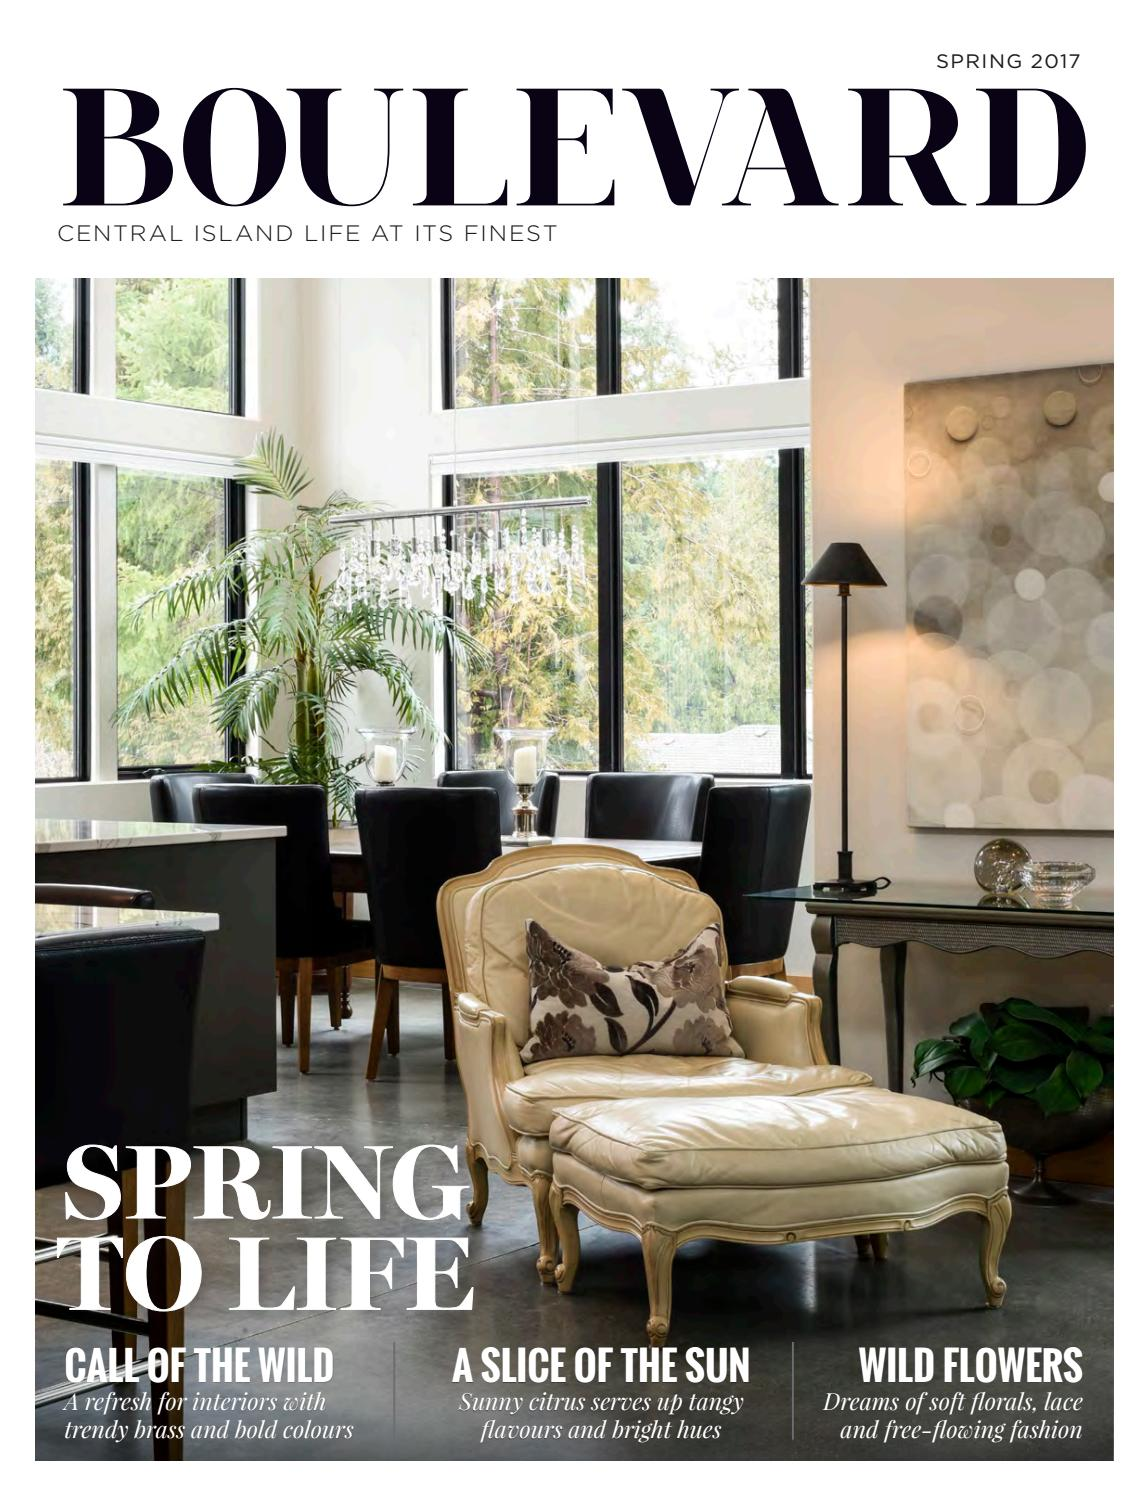 Boulevard Magazine Central Island Edition Spring 2017 Issue By